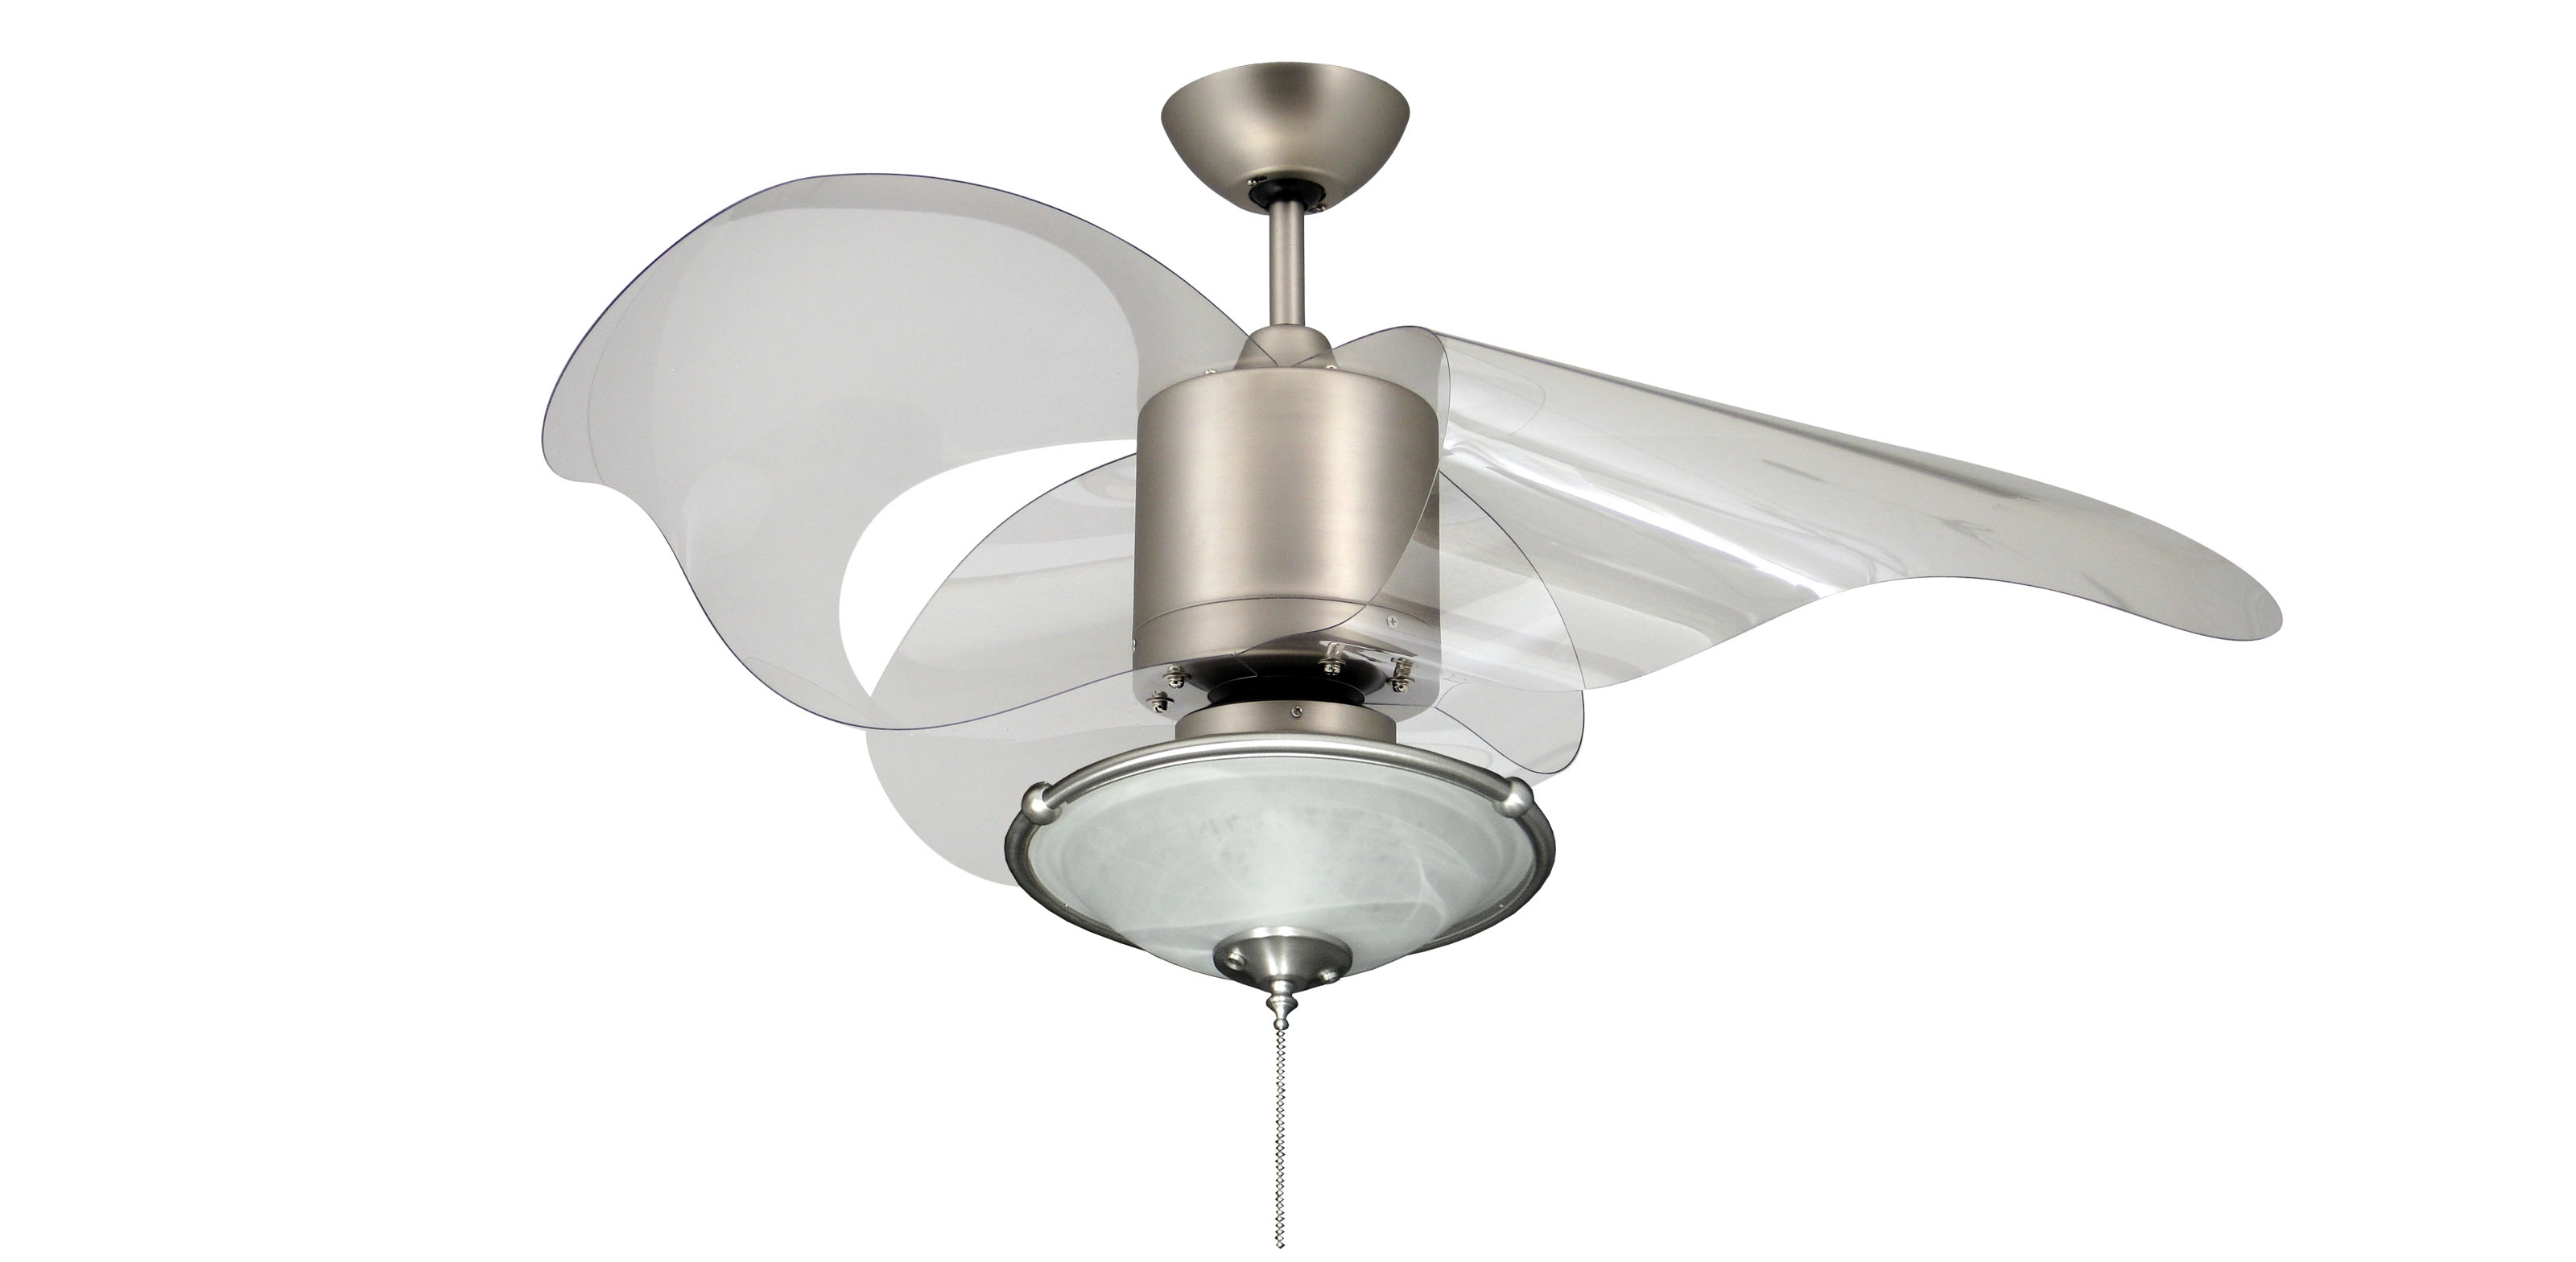 Homesfeed Regarding Stainless Steel Outdoor Ceiling Fans With Light (View 16 of 20)